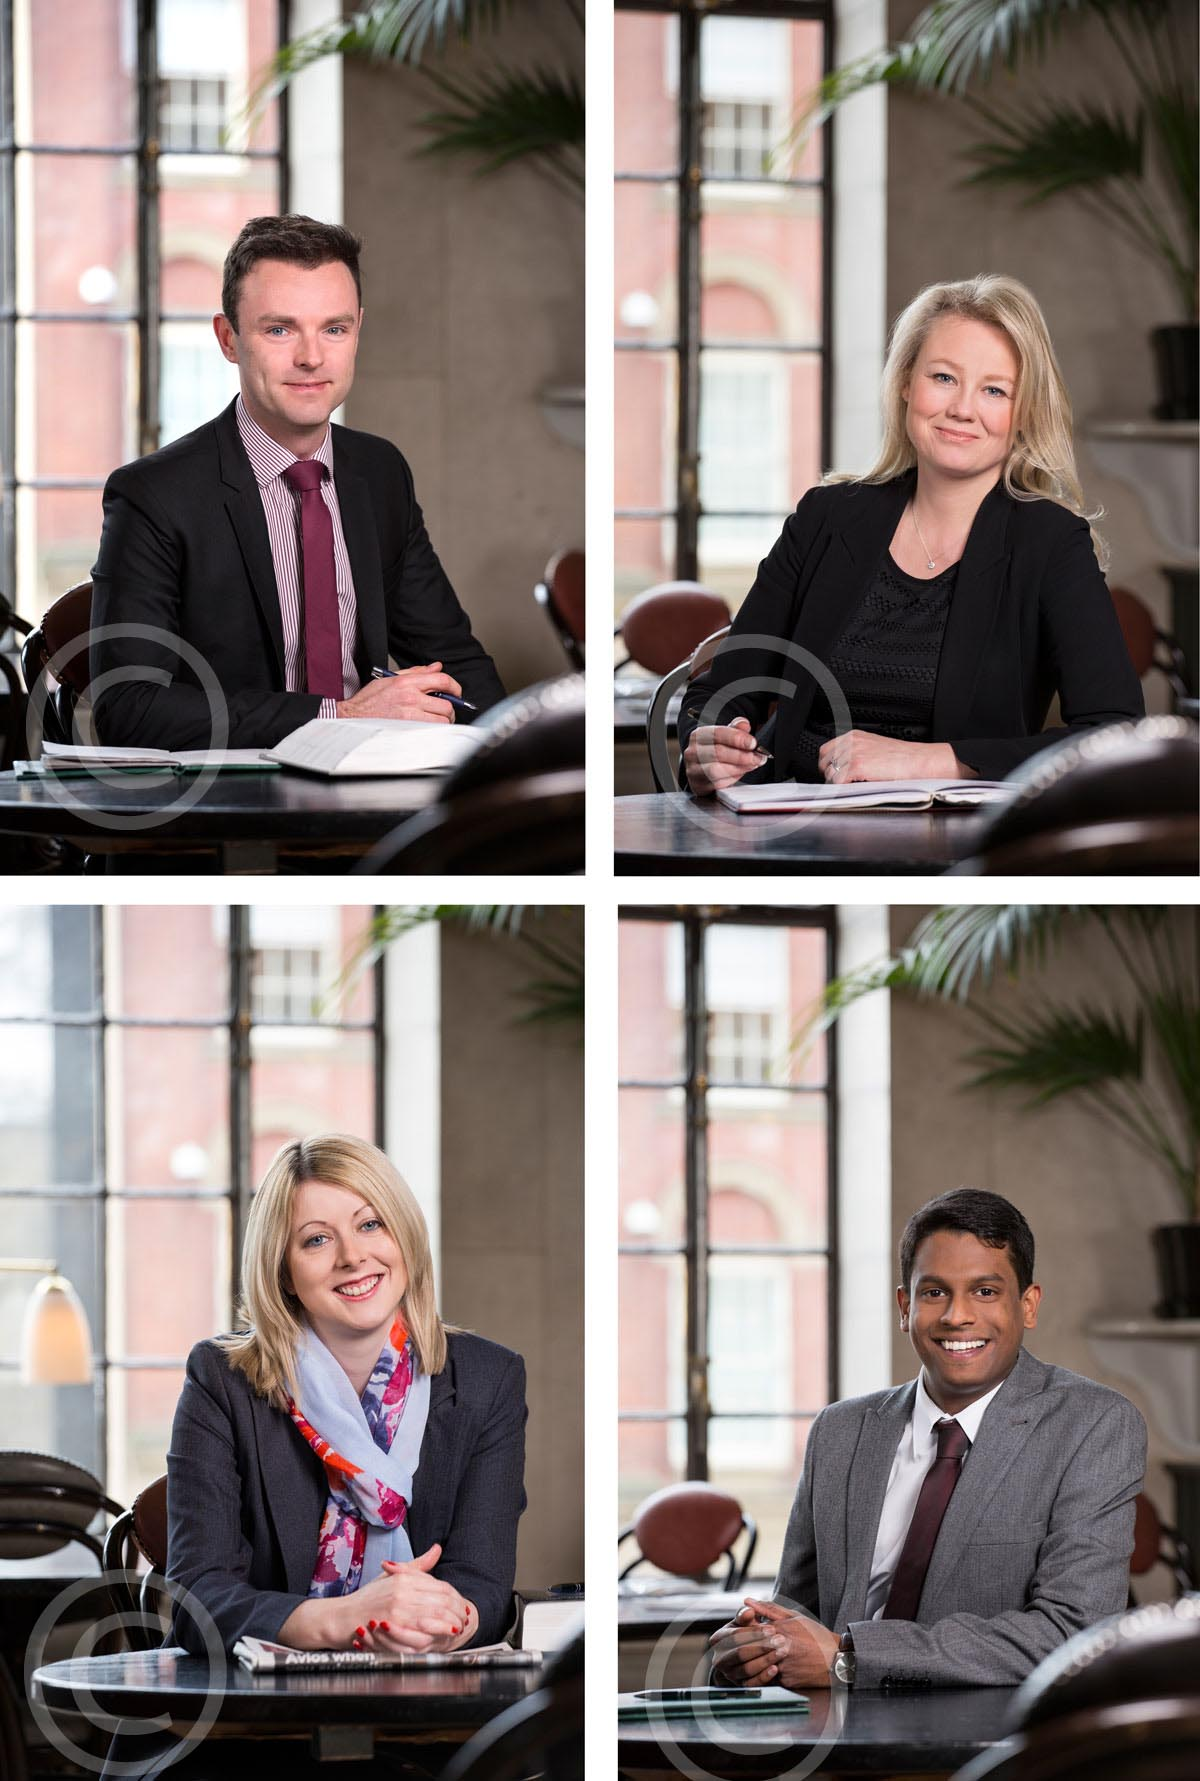 virtuosolegal-corporate-photography-leeds-yorkshire-portraits-location-city-centre